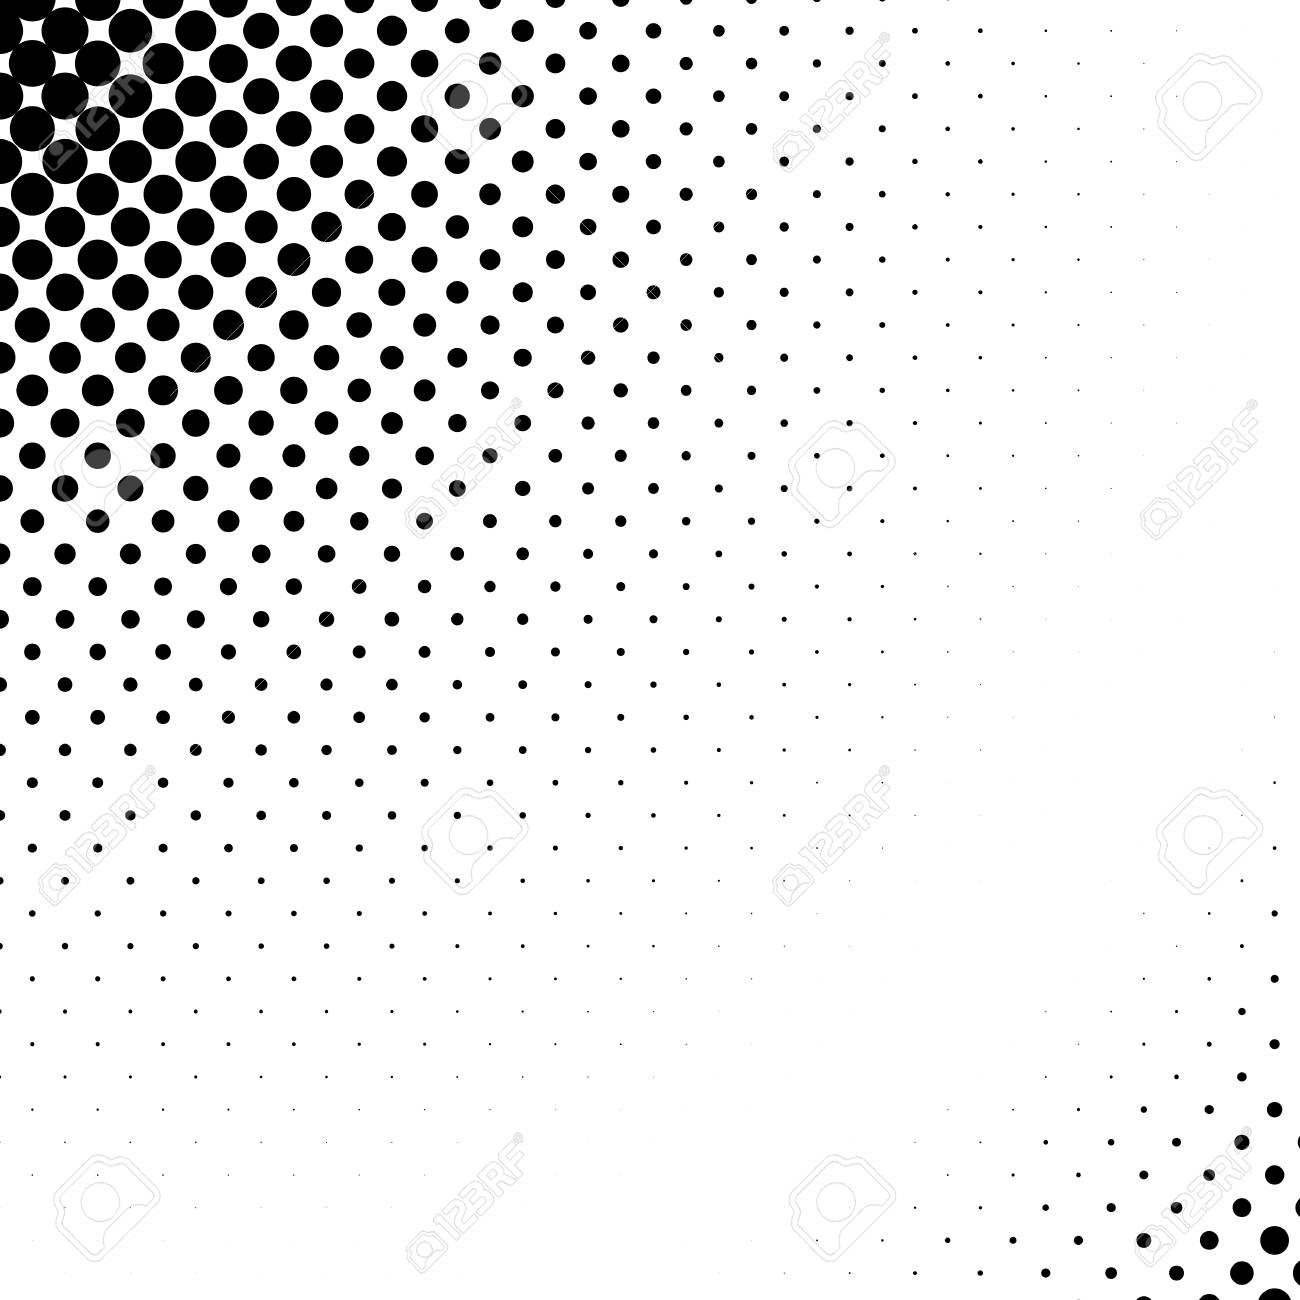 Vector abstract dotted halftone template background. Pop art dotted gradient design element. - 93384047